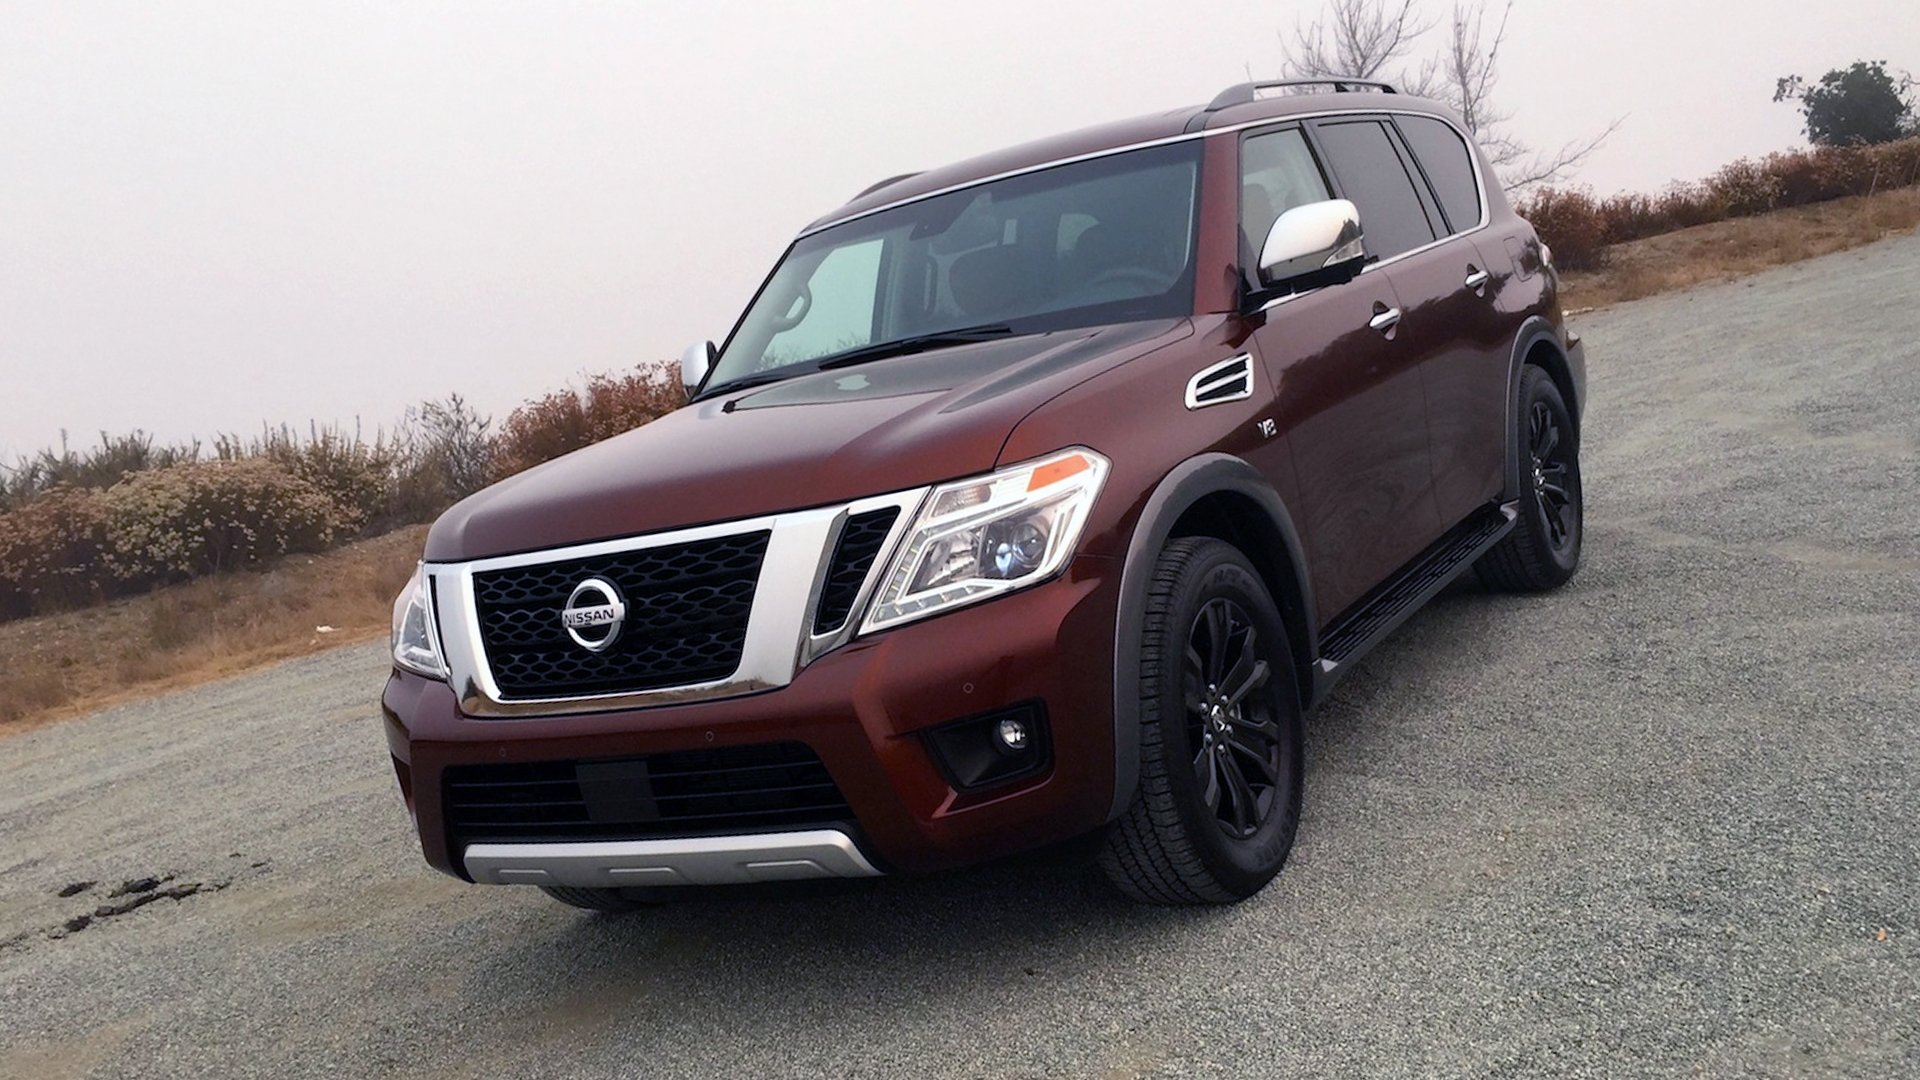 Nissan Armada Images Car HD